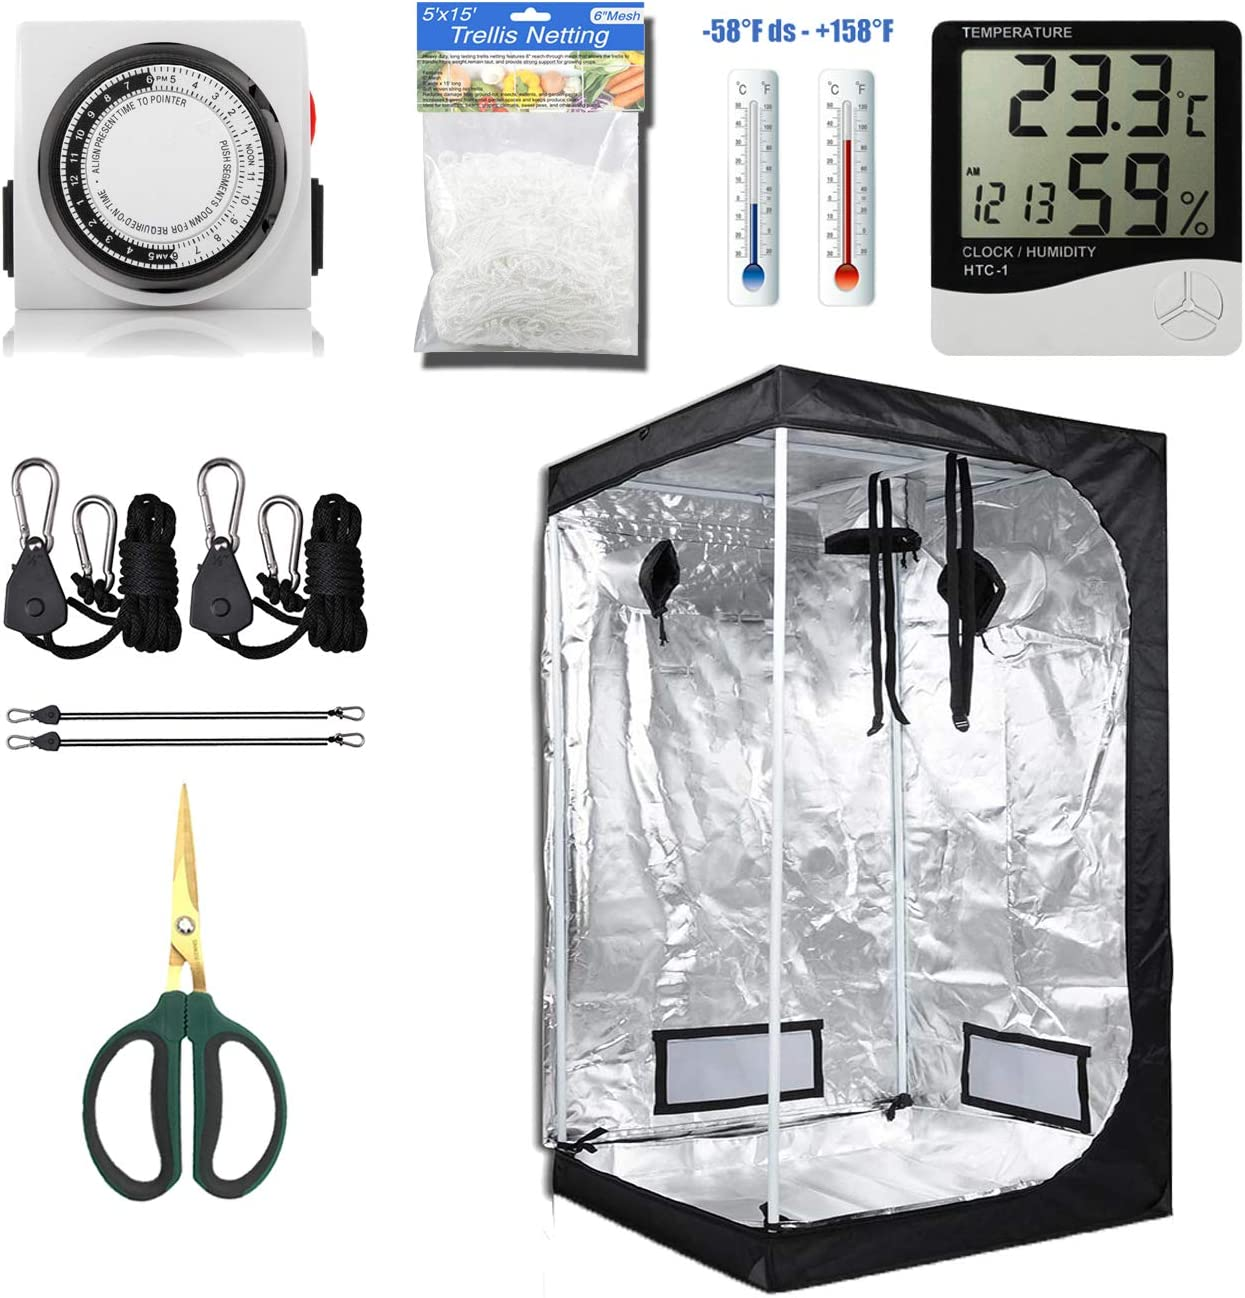 cdmall Grow Tent Room Complete Kit 36 x36 x72 Kit Hydroponic Growing System Indoor Plants Growing Dark Room Non Toxic Hut Hydroponics Growing Setup Accessories 36 x36 x72 Kit